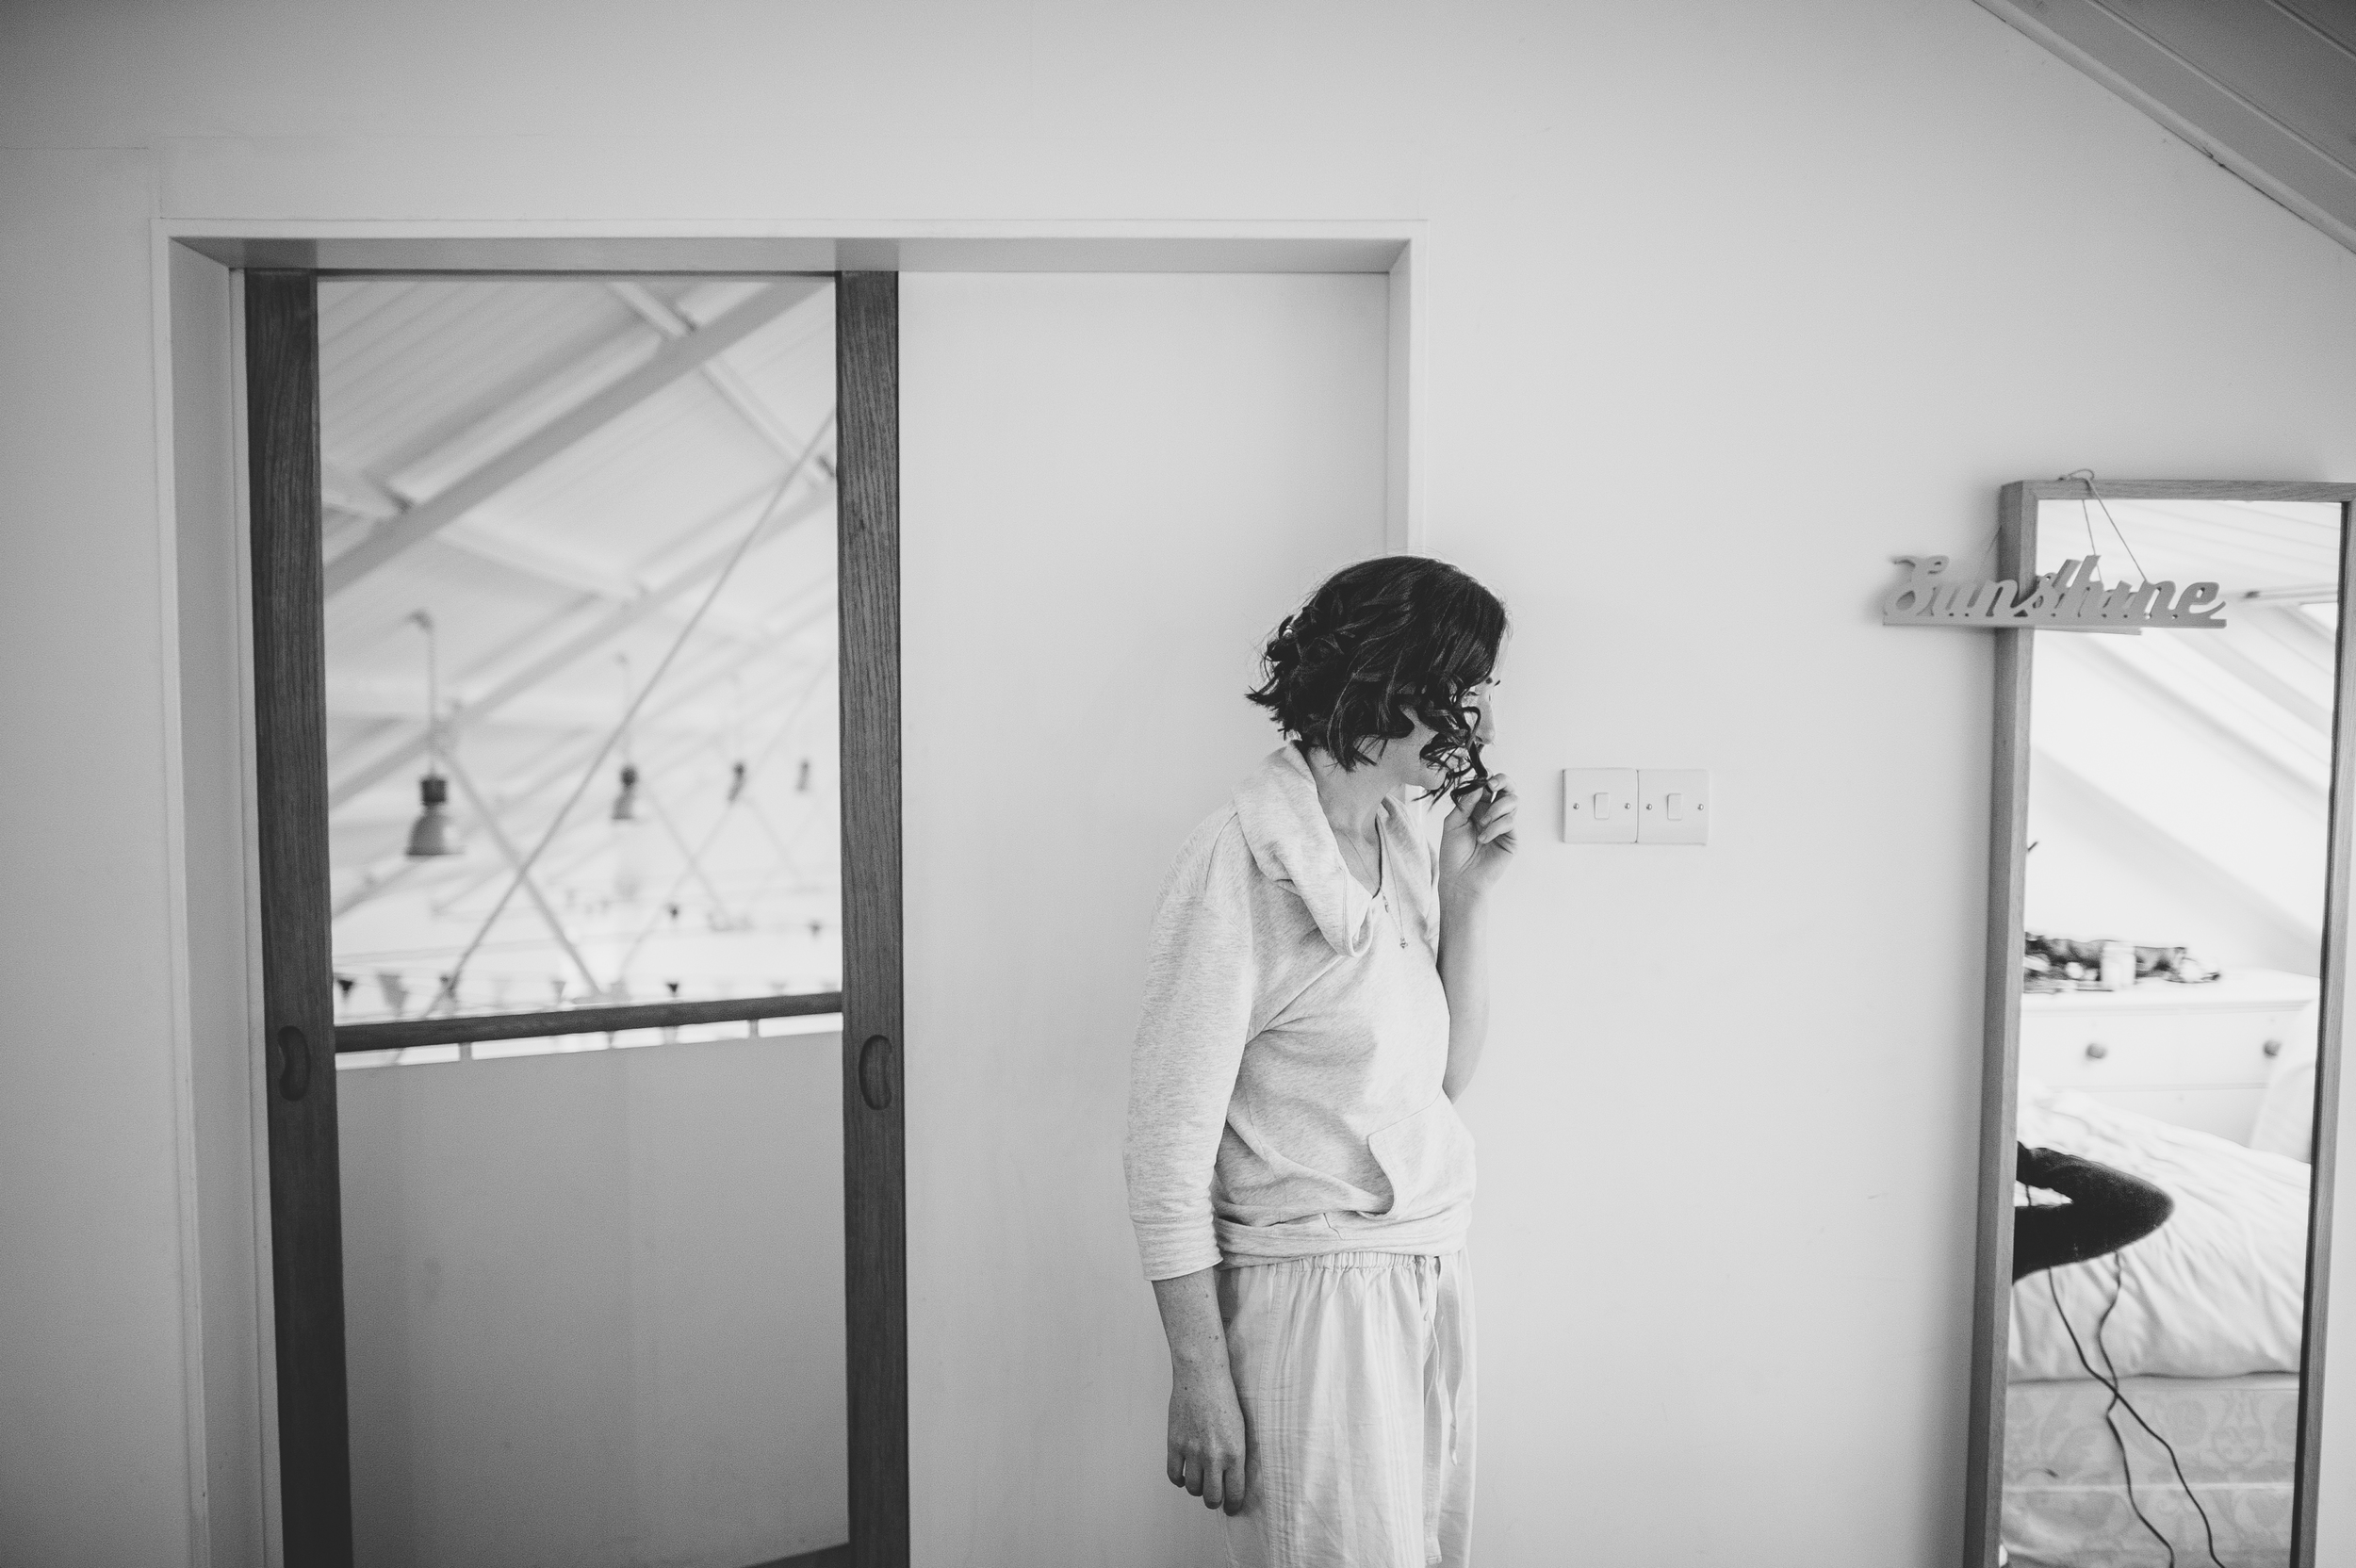 066-lisa-devine-photography-alternative-creative-wedding-photography-glasgow-crear-scotland-uk.JPG